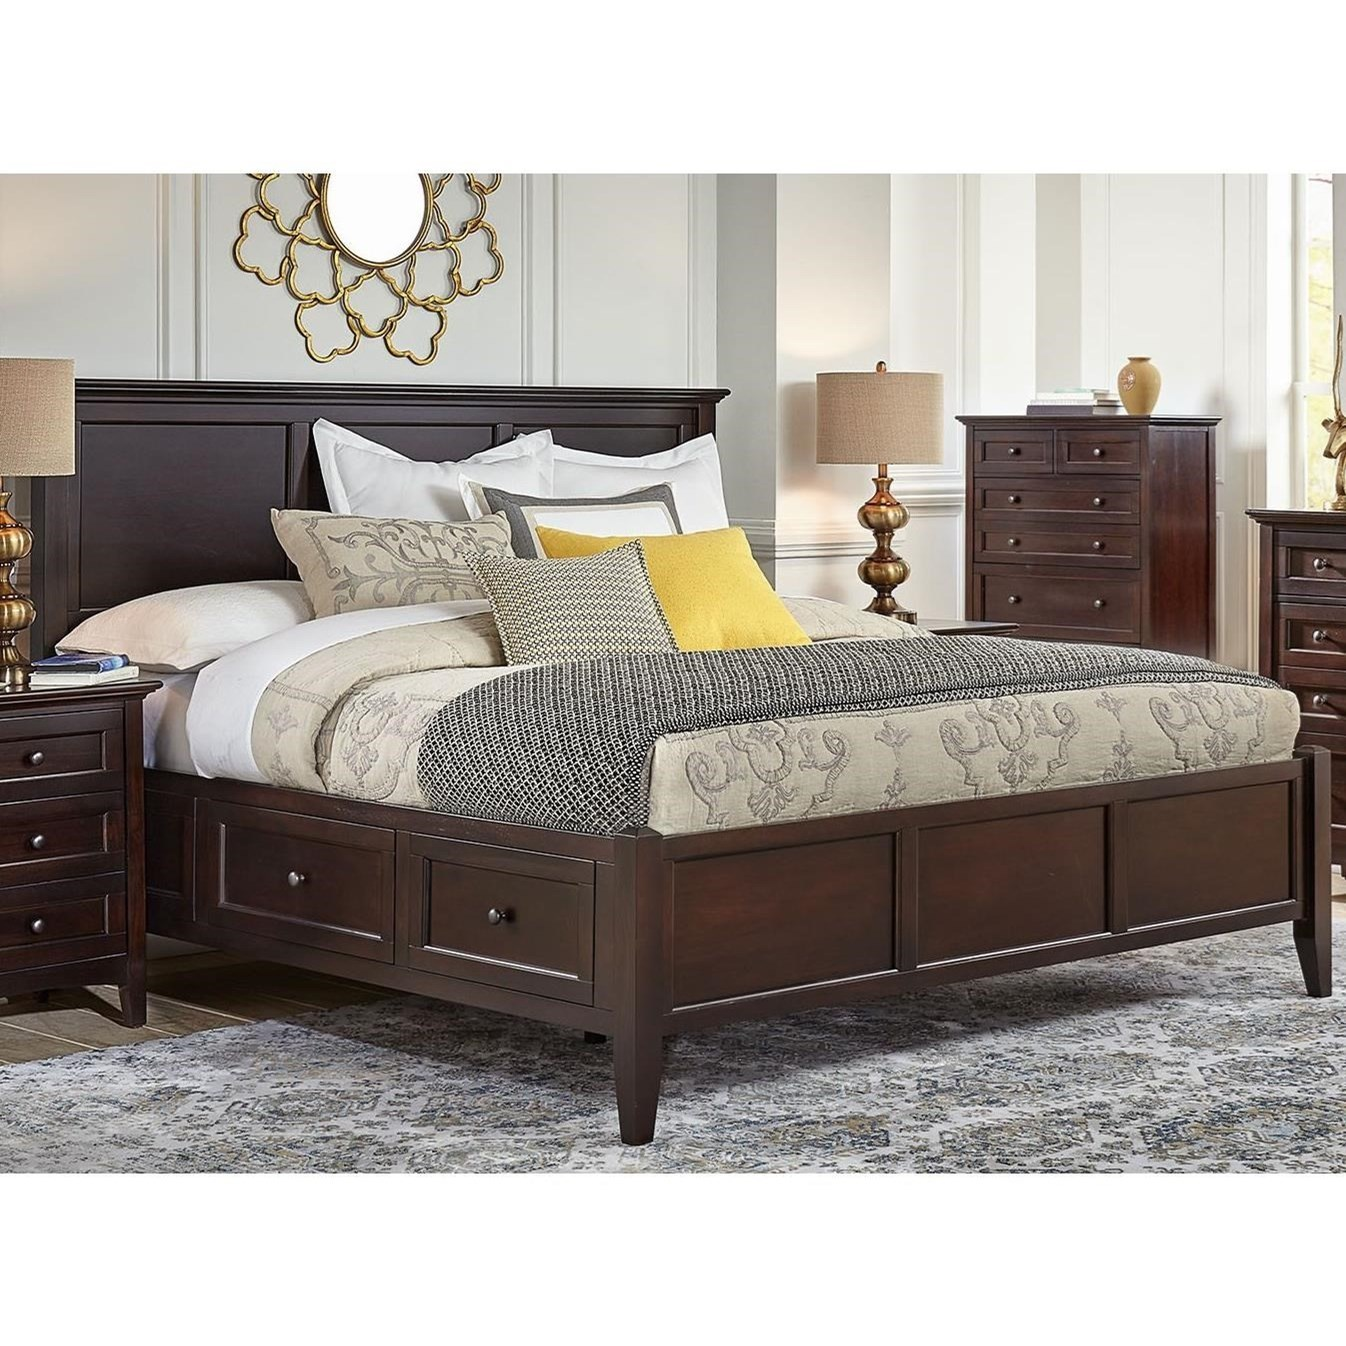 Aamerica Westlake Transitional California King Bed With 6